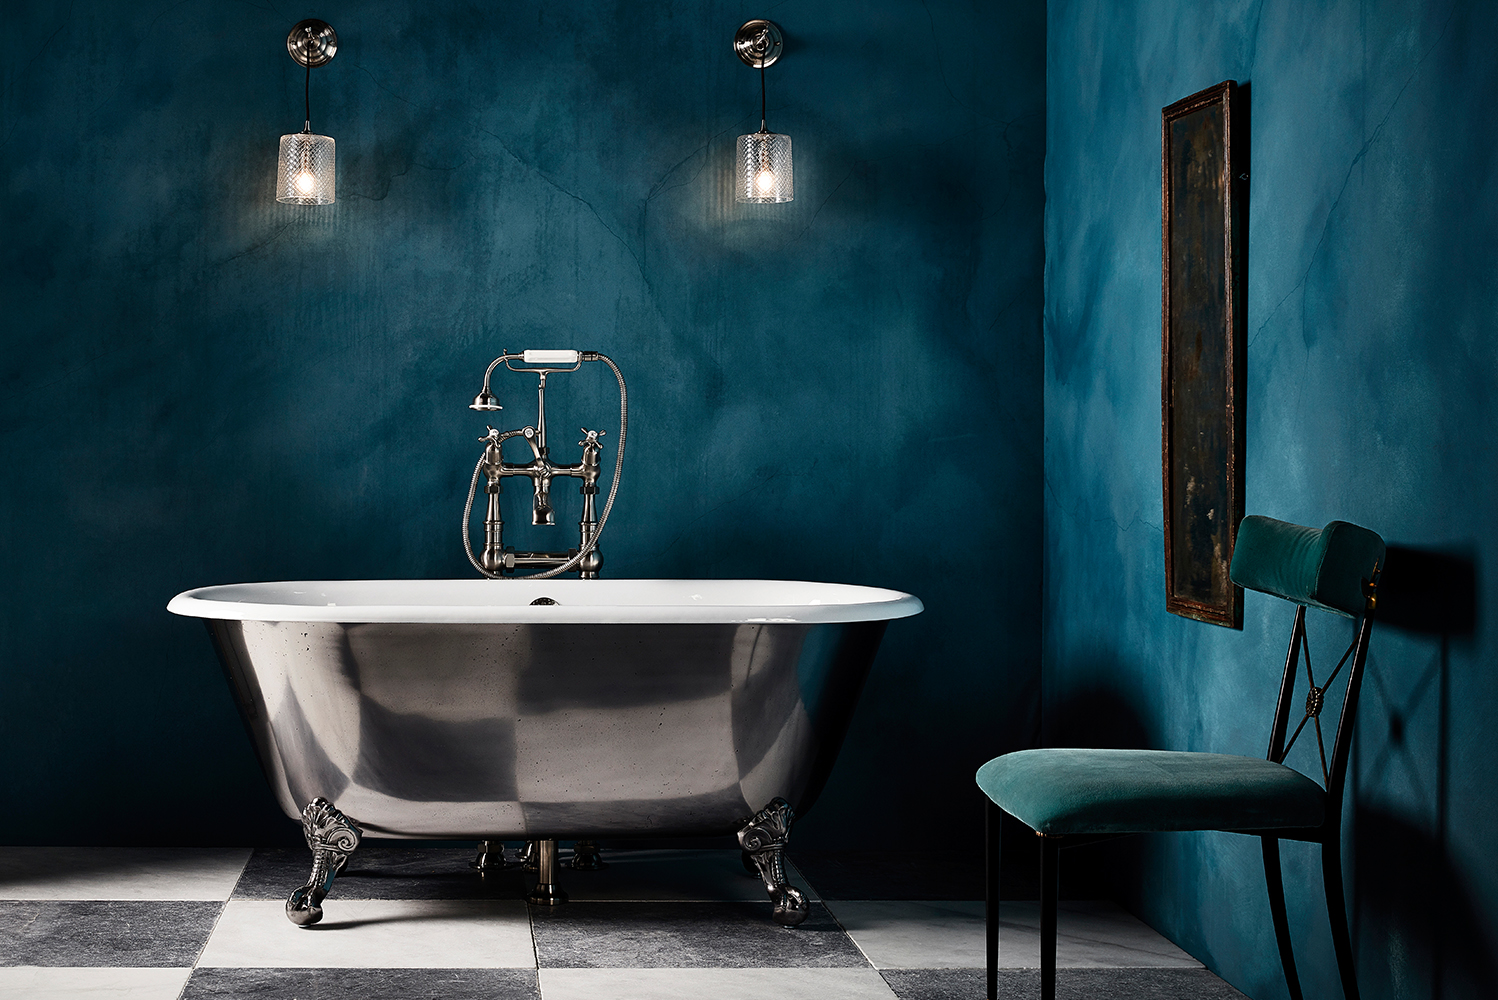 The Ashburn cast-iron bathtub has ball and claw feet, and is a compact freestanding roll-top version.